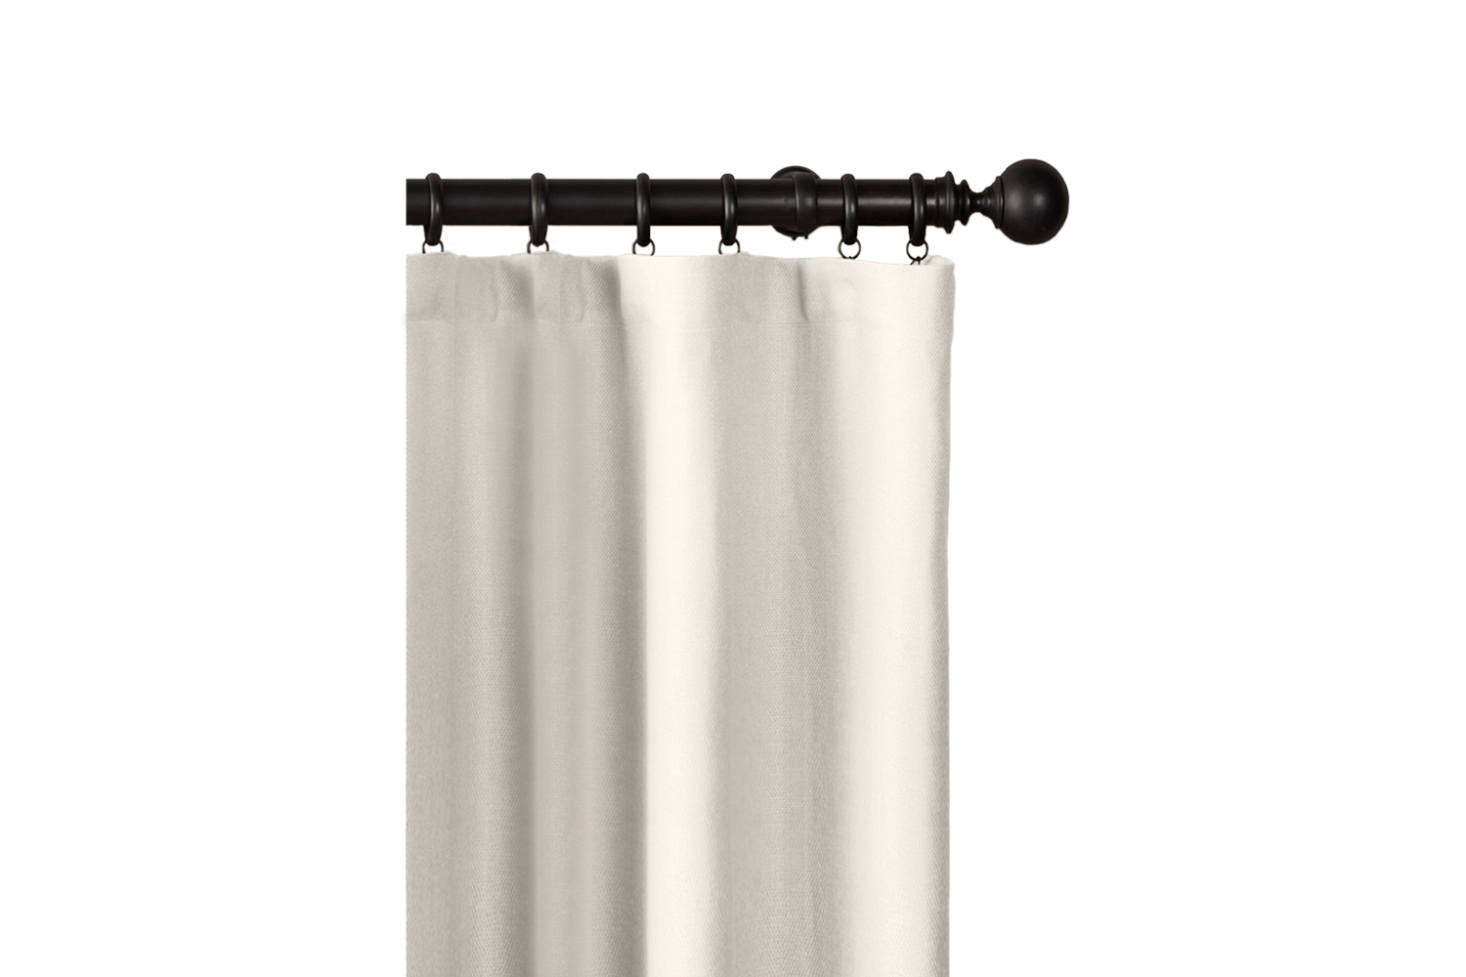 TheBelgian Heavyweight Textured Linen Drapery with Rod Pocket in Natural starts at $9 per panel from Restoration Hardware.